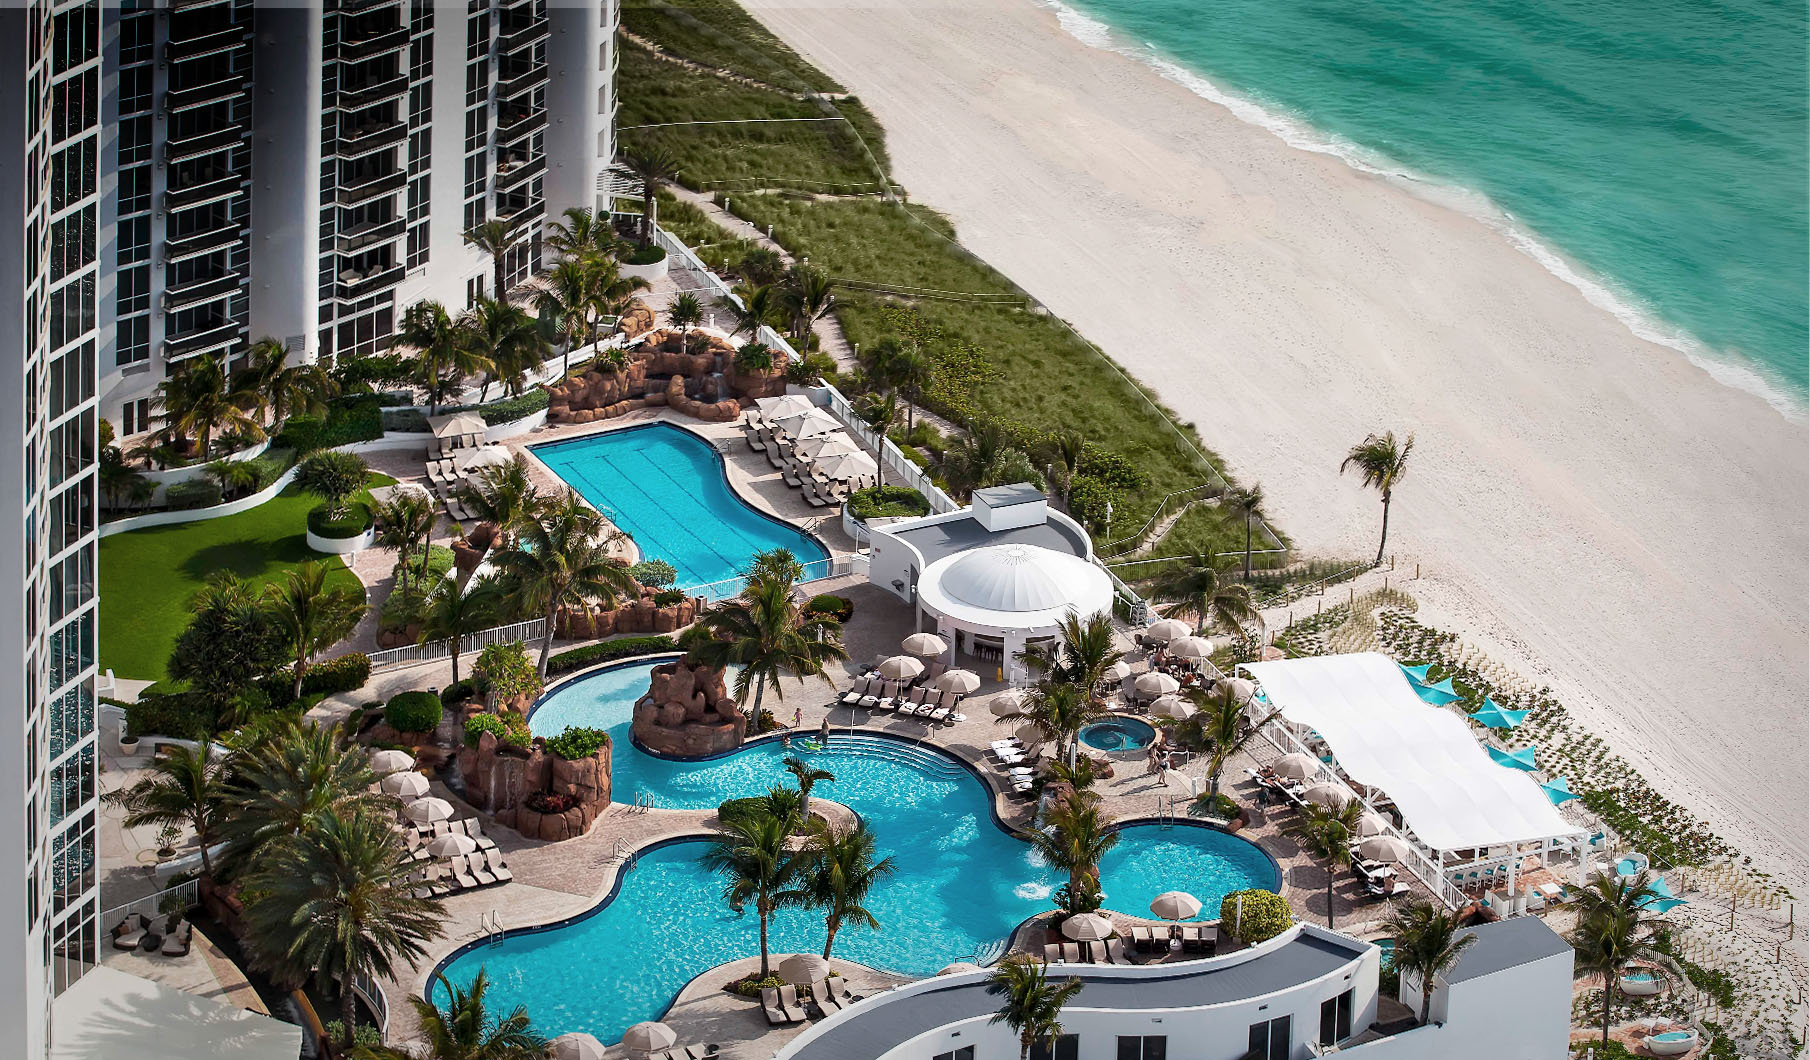 Trump Miami A Miami Hotel Where Lifestyle Meets Luxury